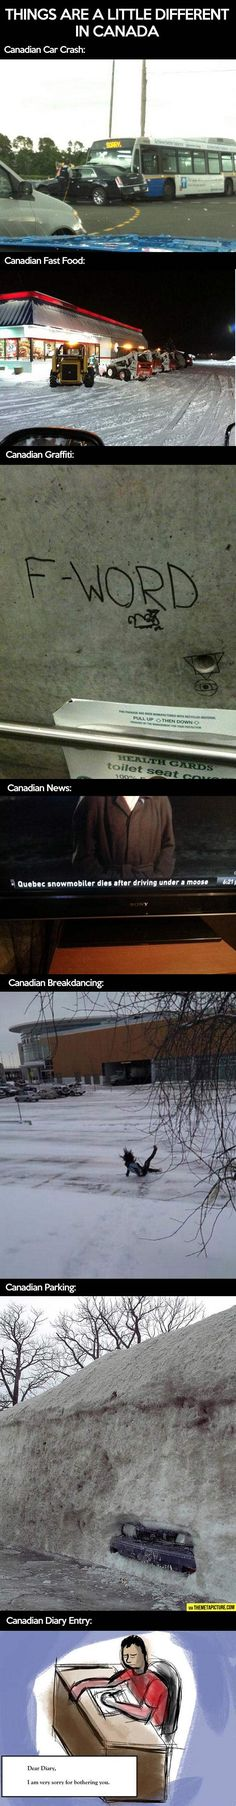 Things are somehow different in Canada…